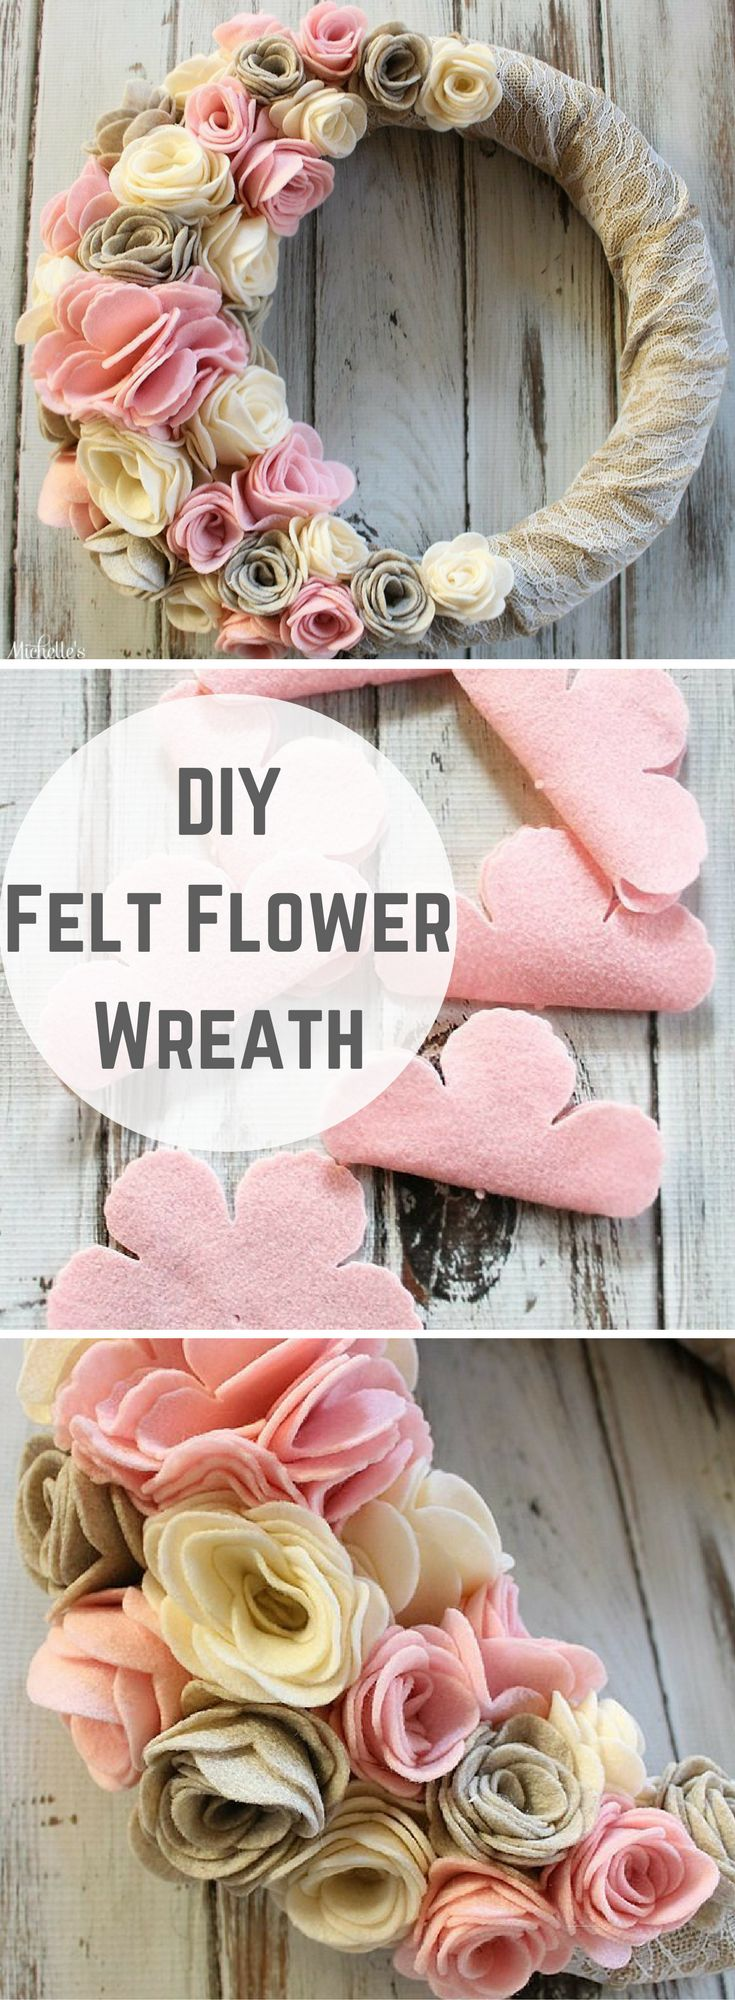 DIY Felt Flower Wreath -Tutorial by Michelle's Party Plan-It. Rustic wreath made with felt flowers, burlap and lace.